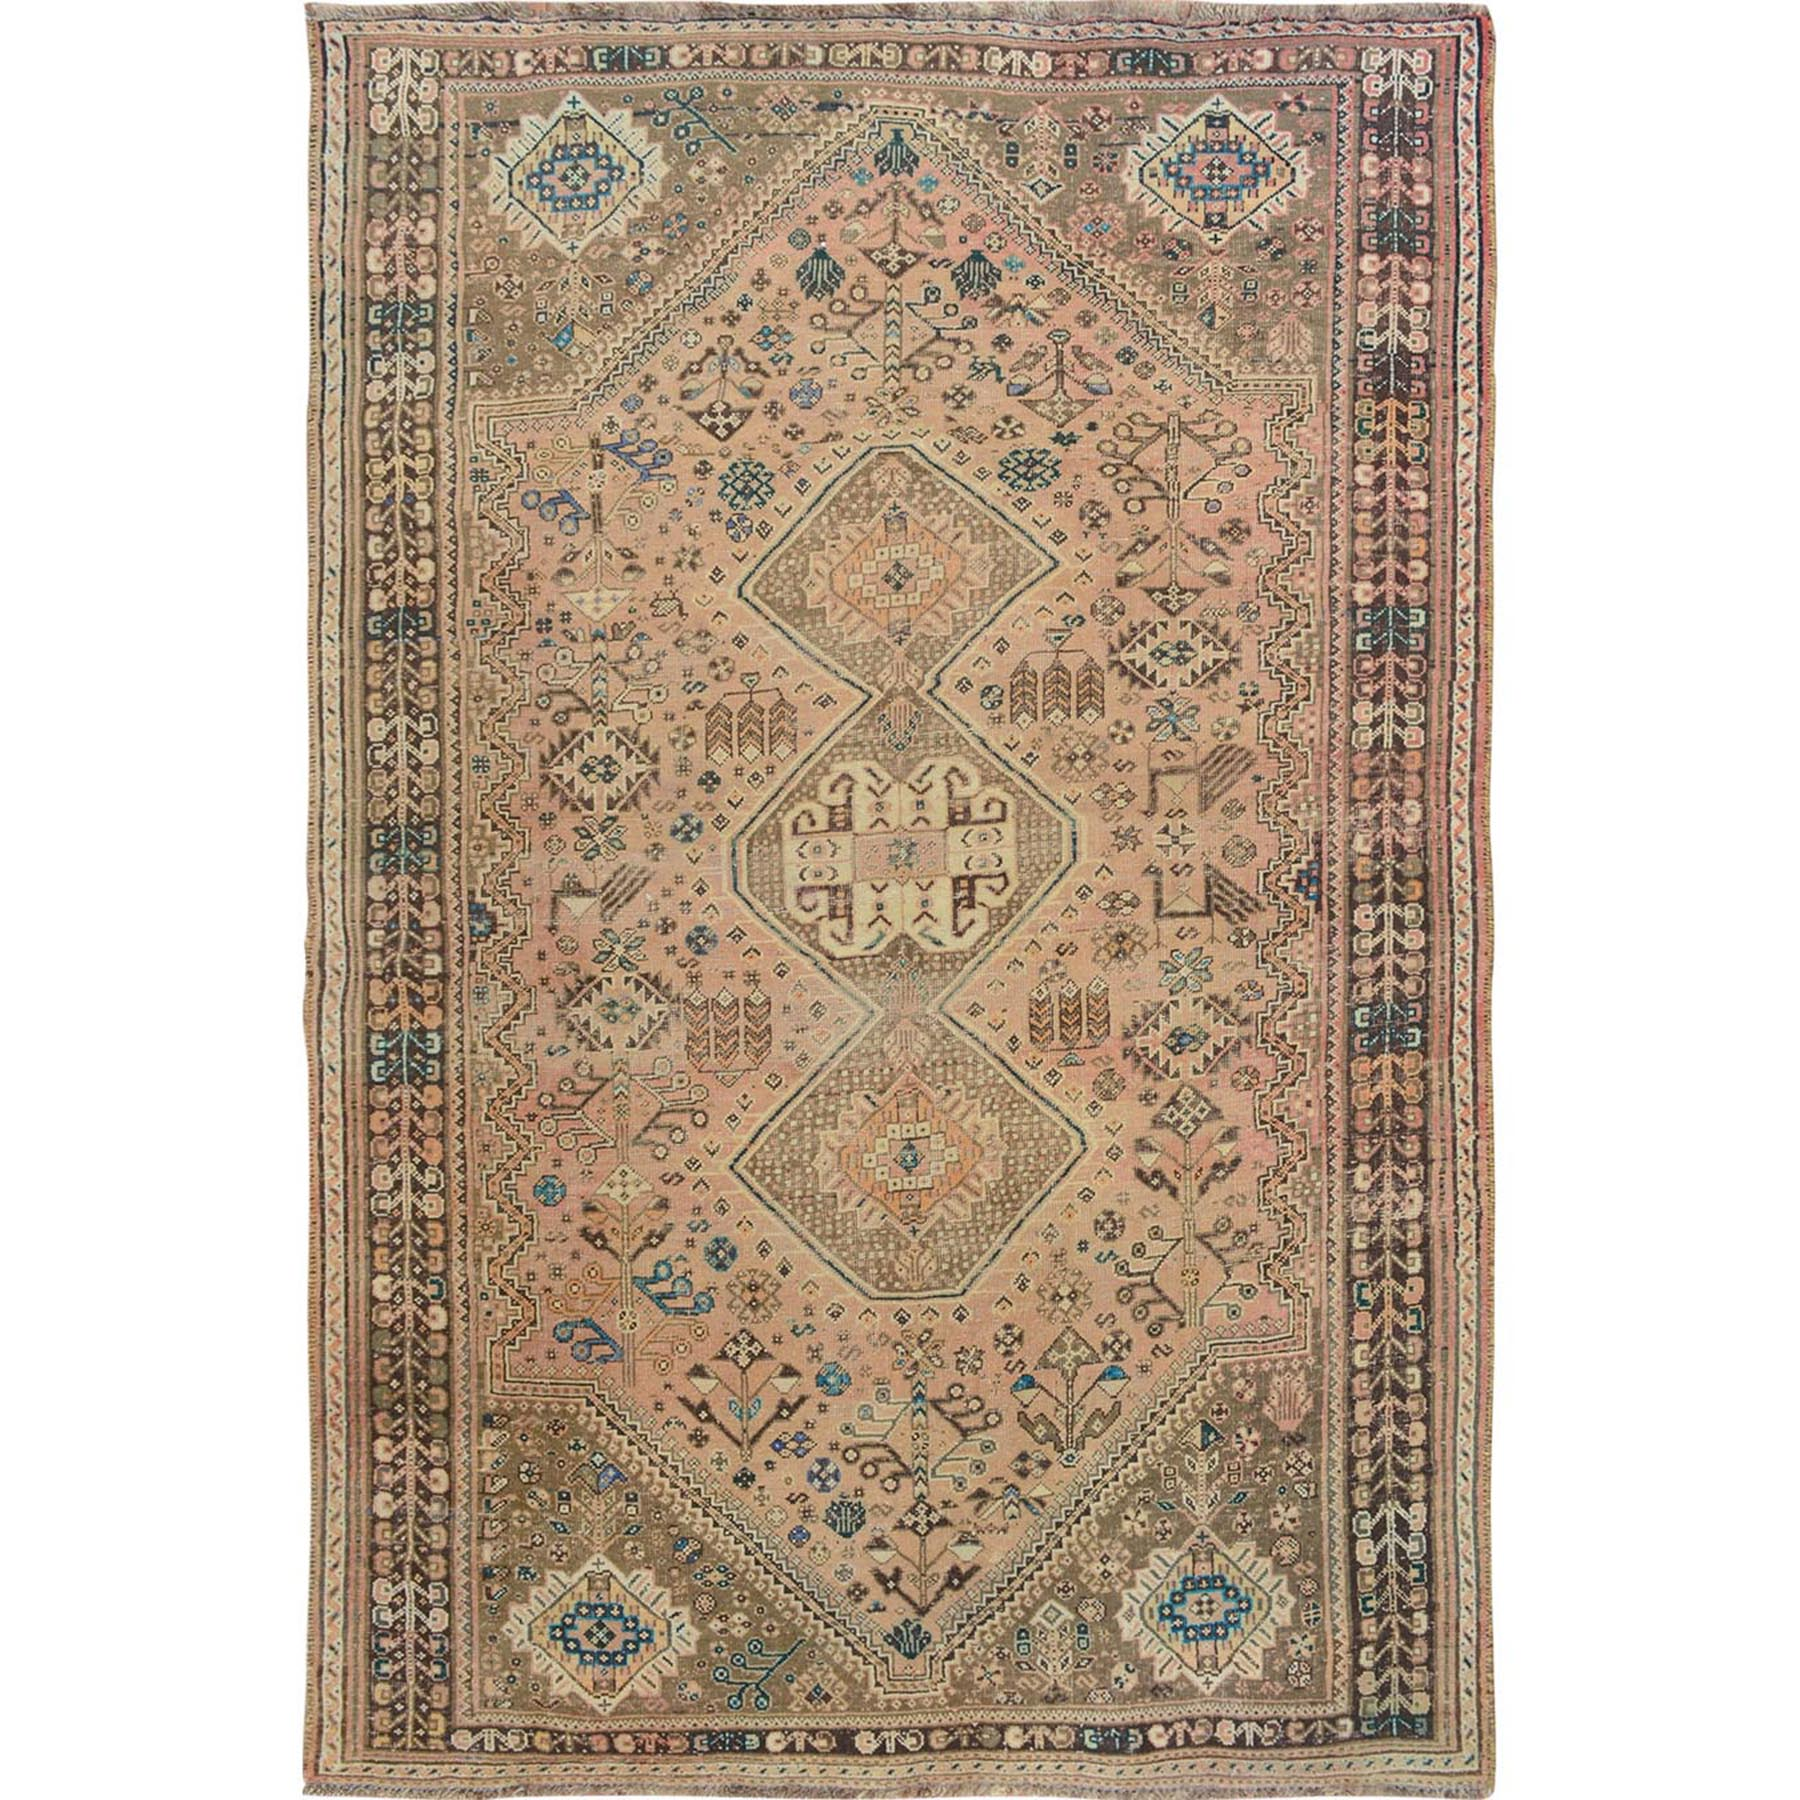 "5'10""x9' Coral Vintage and Worn Down Persian Qashqai Hand Woven Oriental Rug"